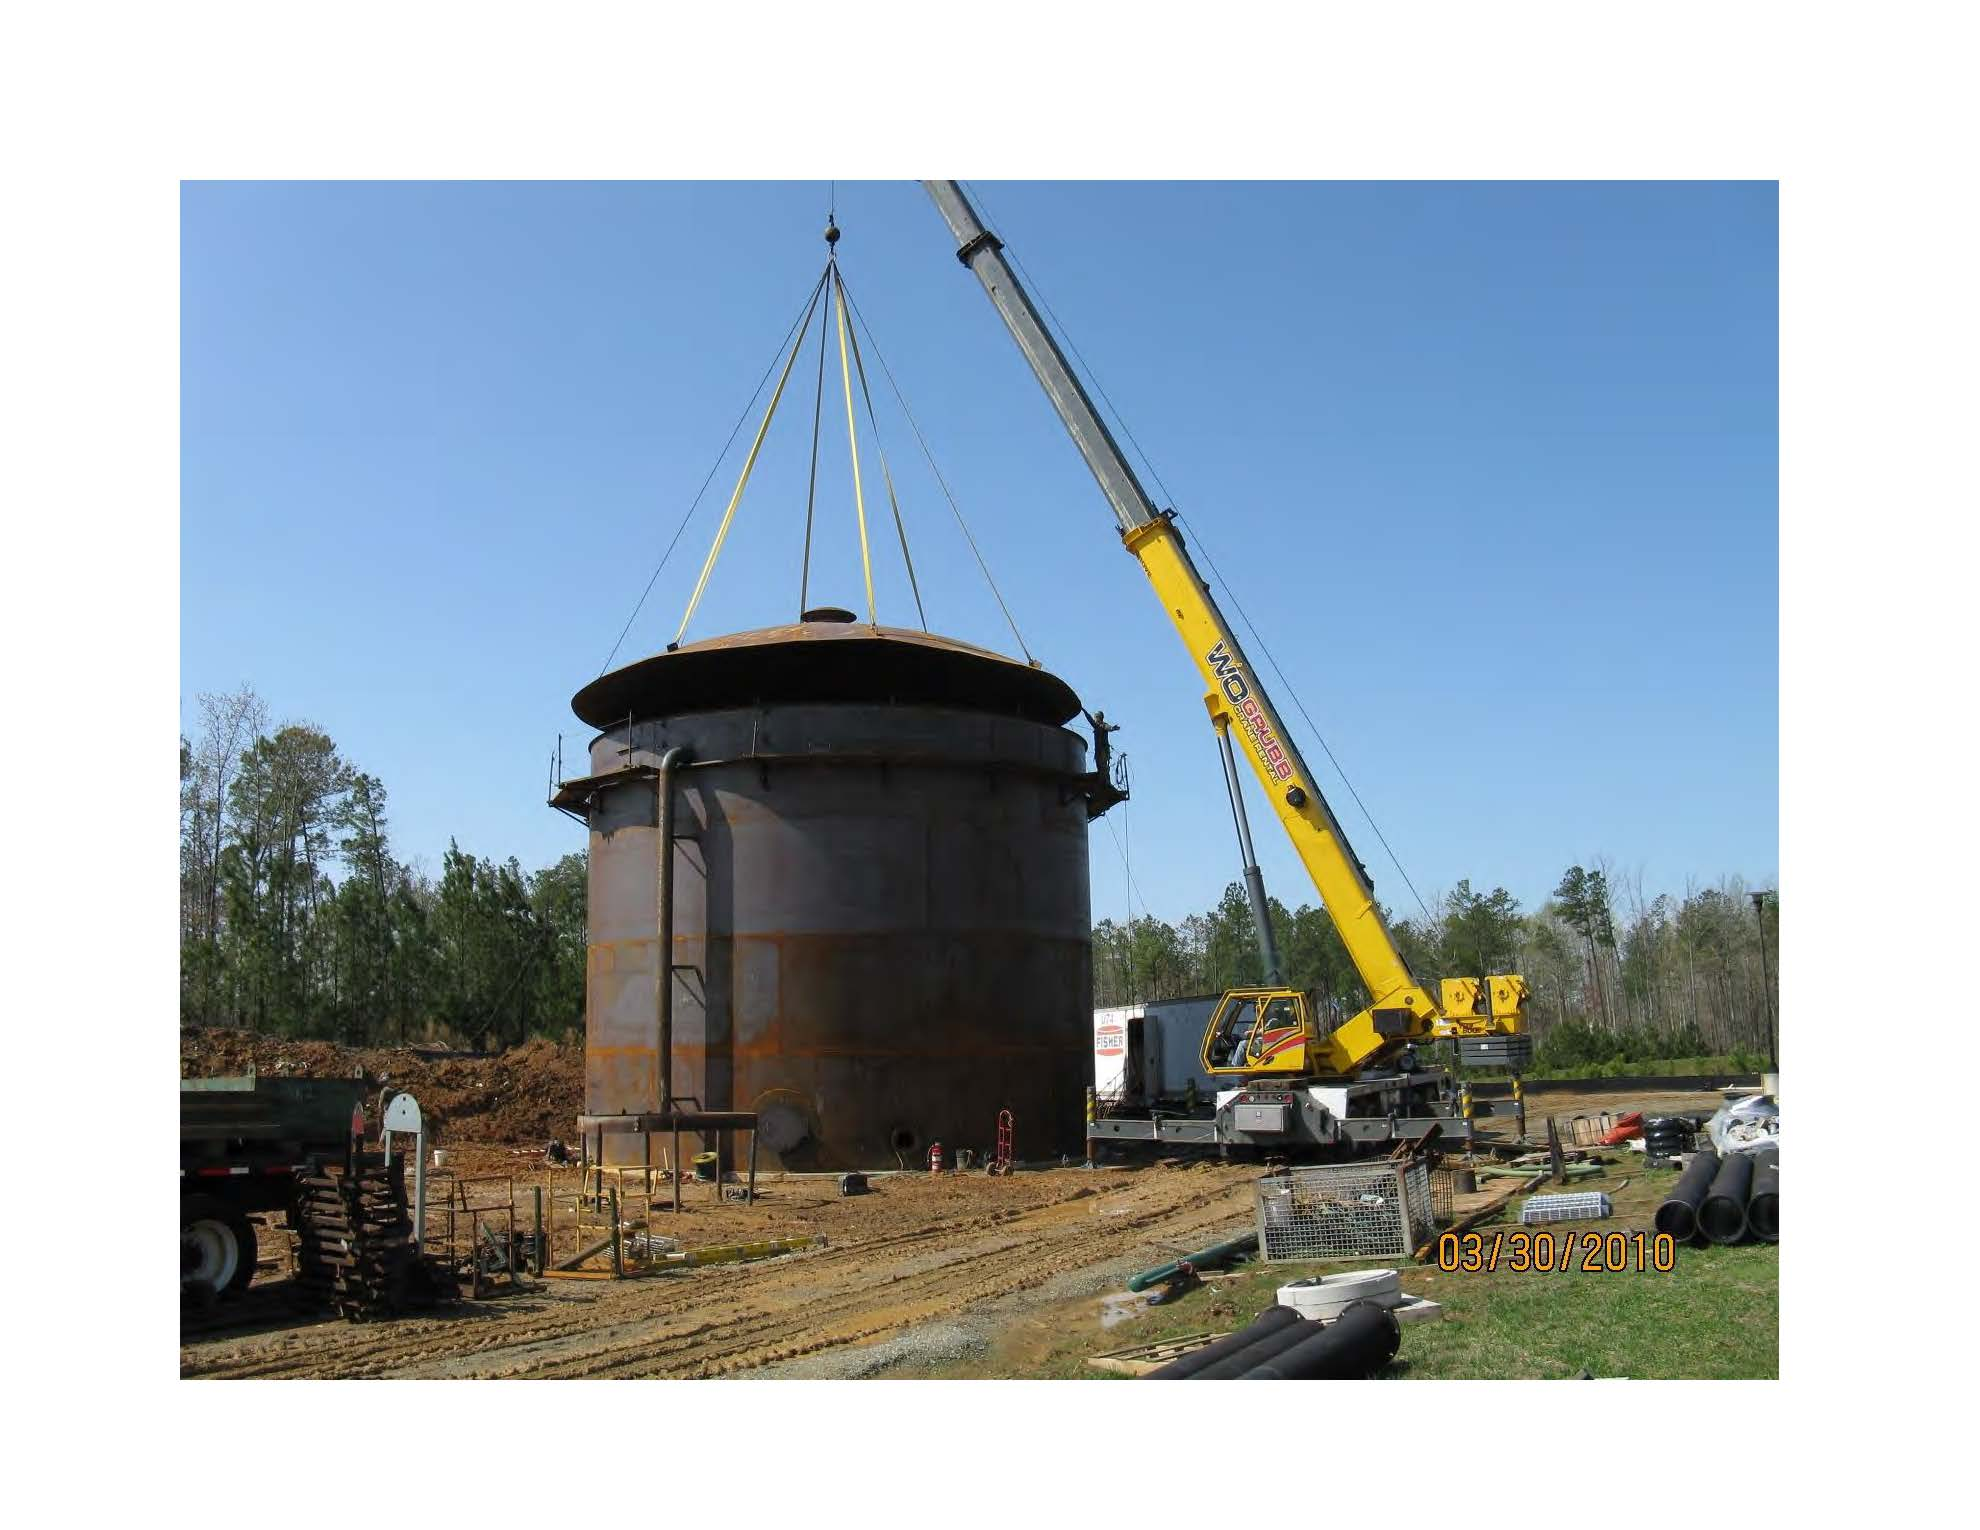 Reclaimed tank and crane